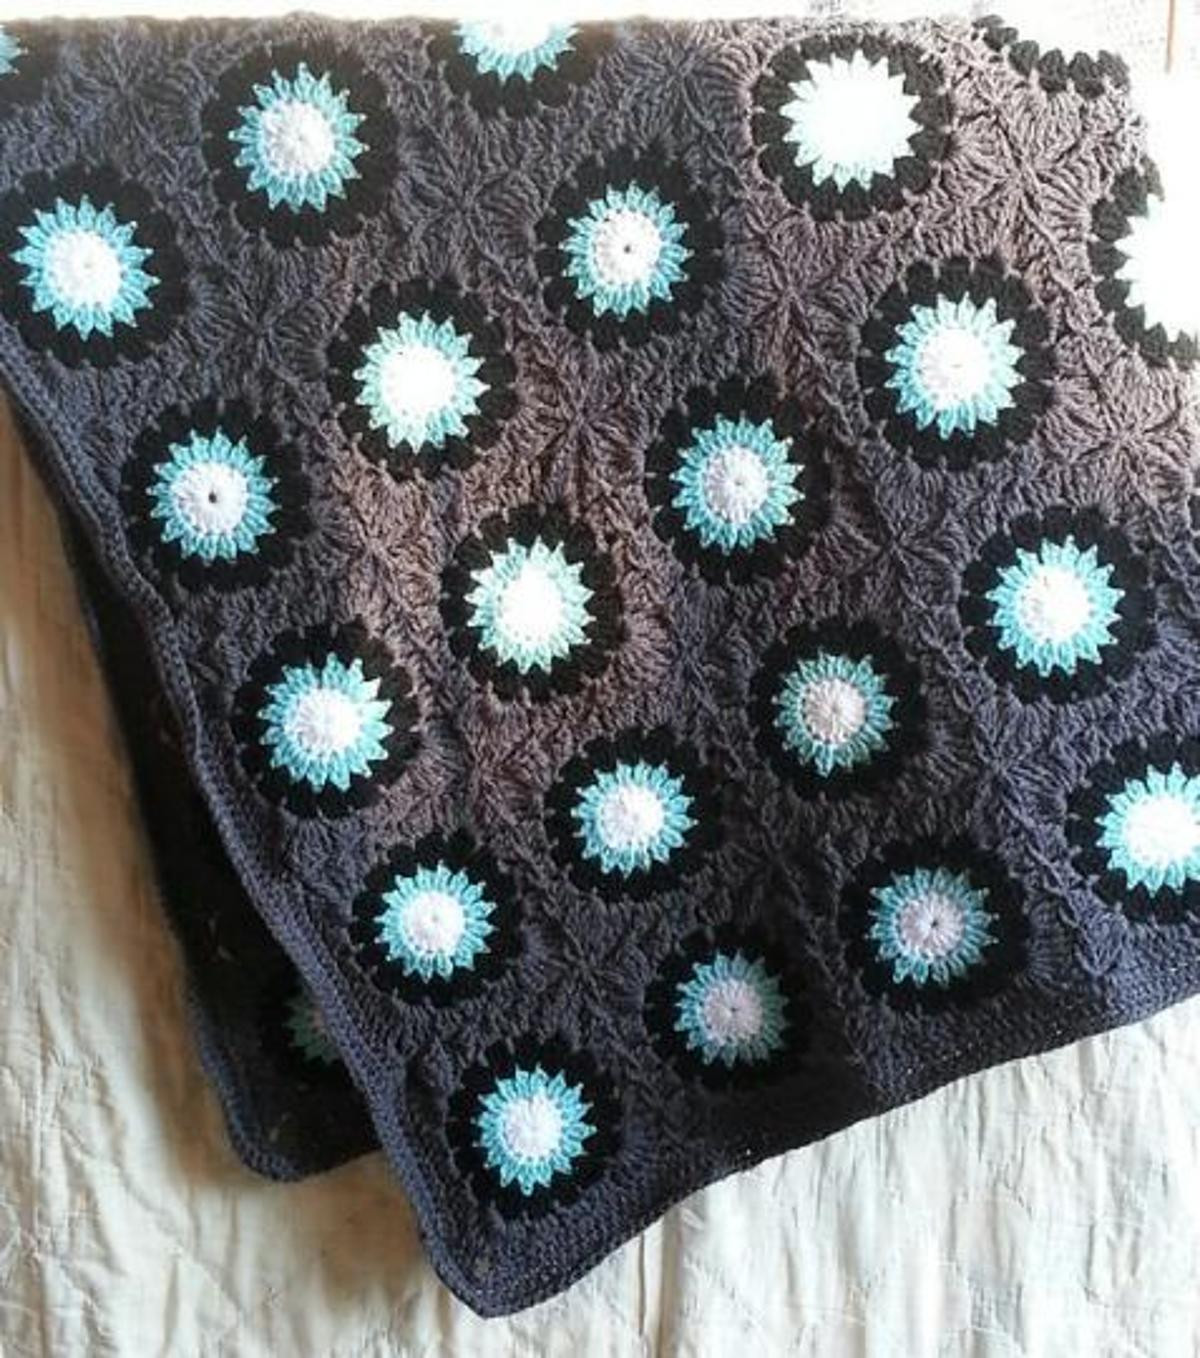 Awesome 10 Flower Granny Square Crochet Patterns to Stitch Crochet Flower Granny Square Of Fresh 47 Pictures Crochet Flower Granny Square